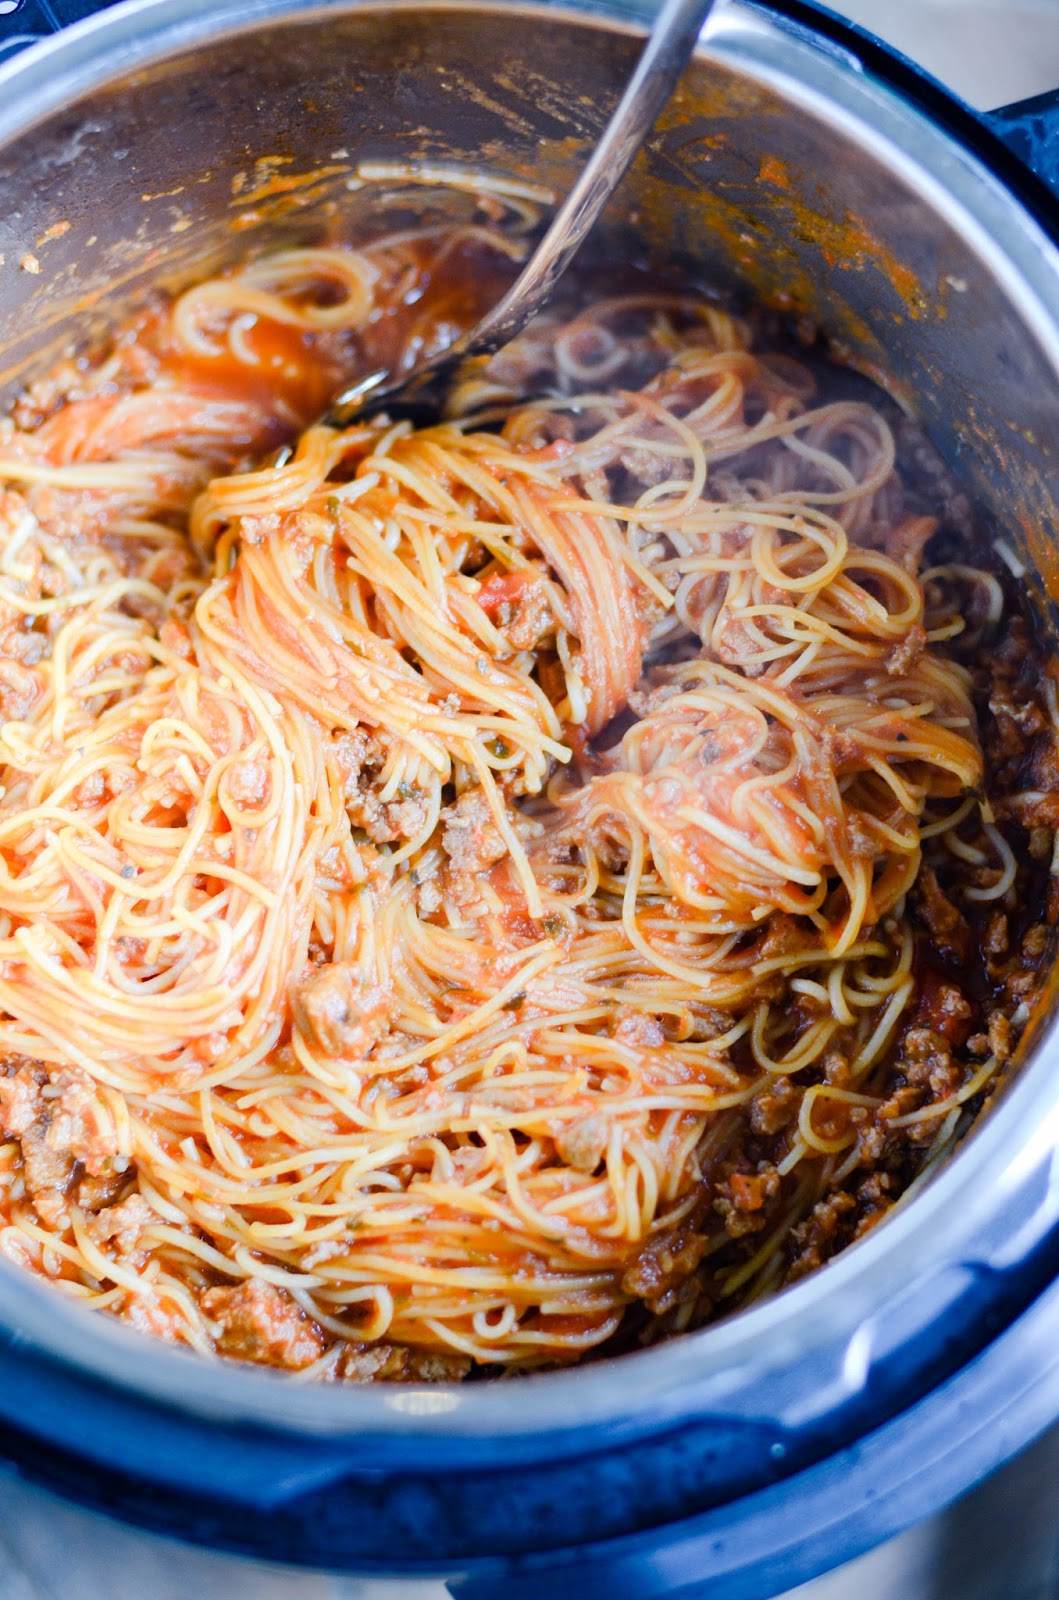 This instant pot spaghetti comes together quickly in one pot, from browning FROZEN ground meat to boiling the noodles. A great weeknight dinner recipe to keep in your back pocket!